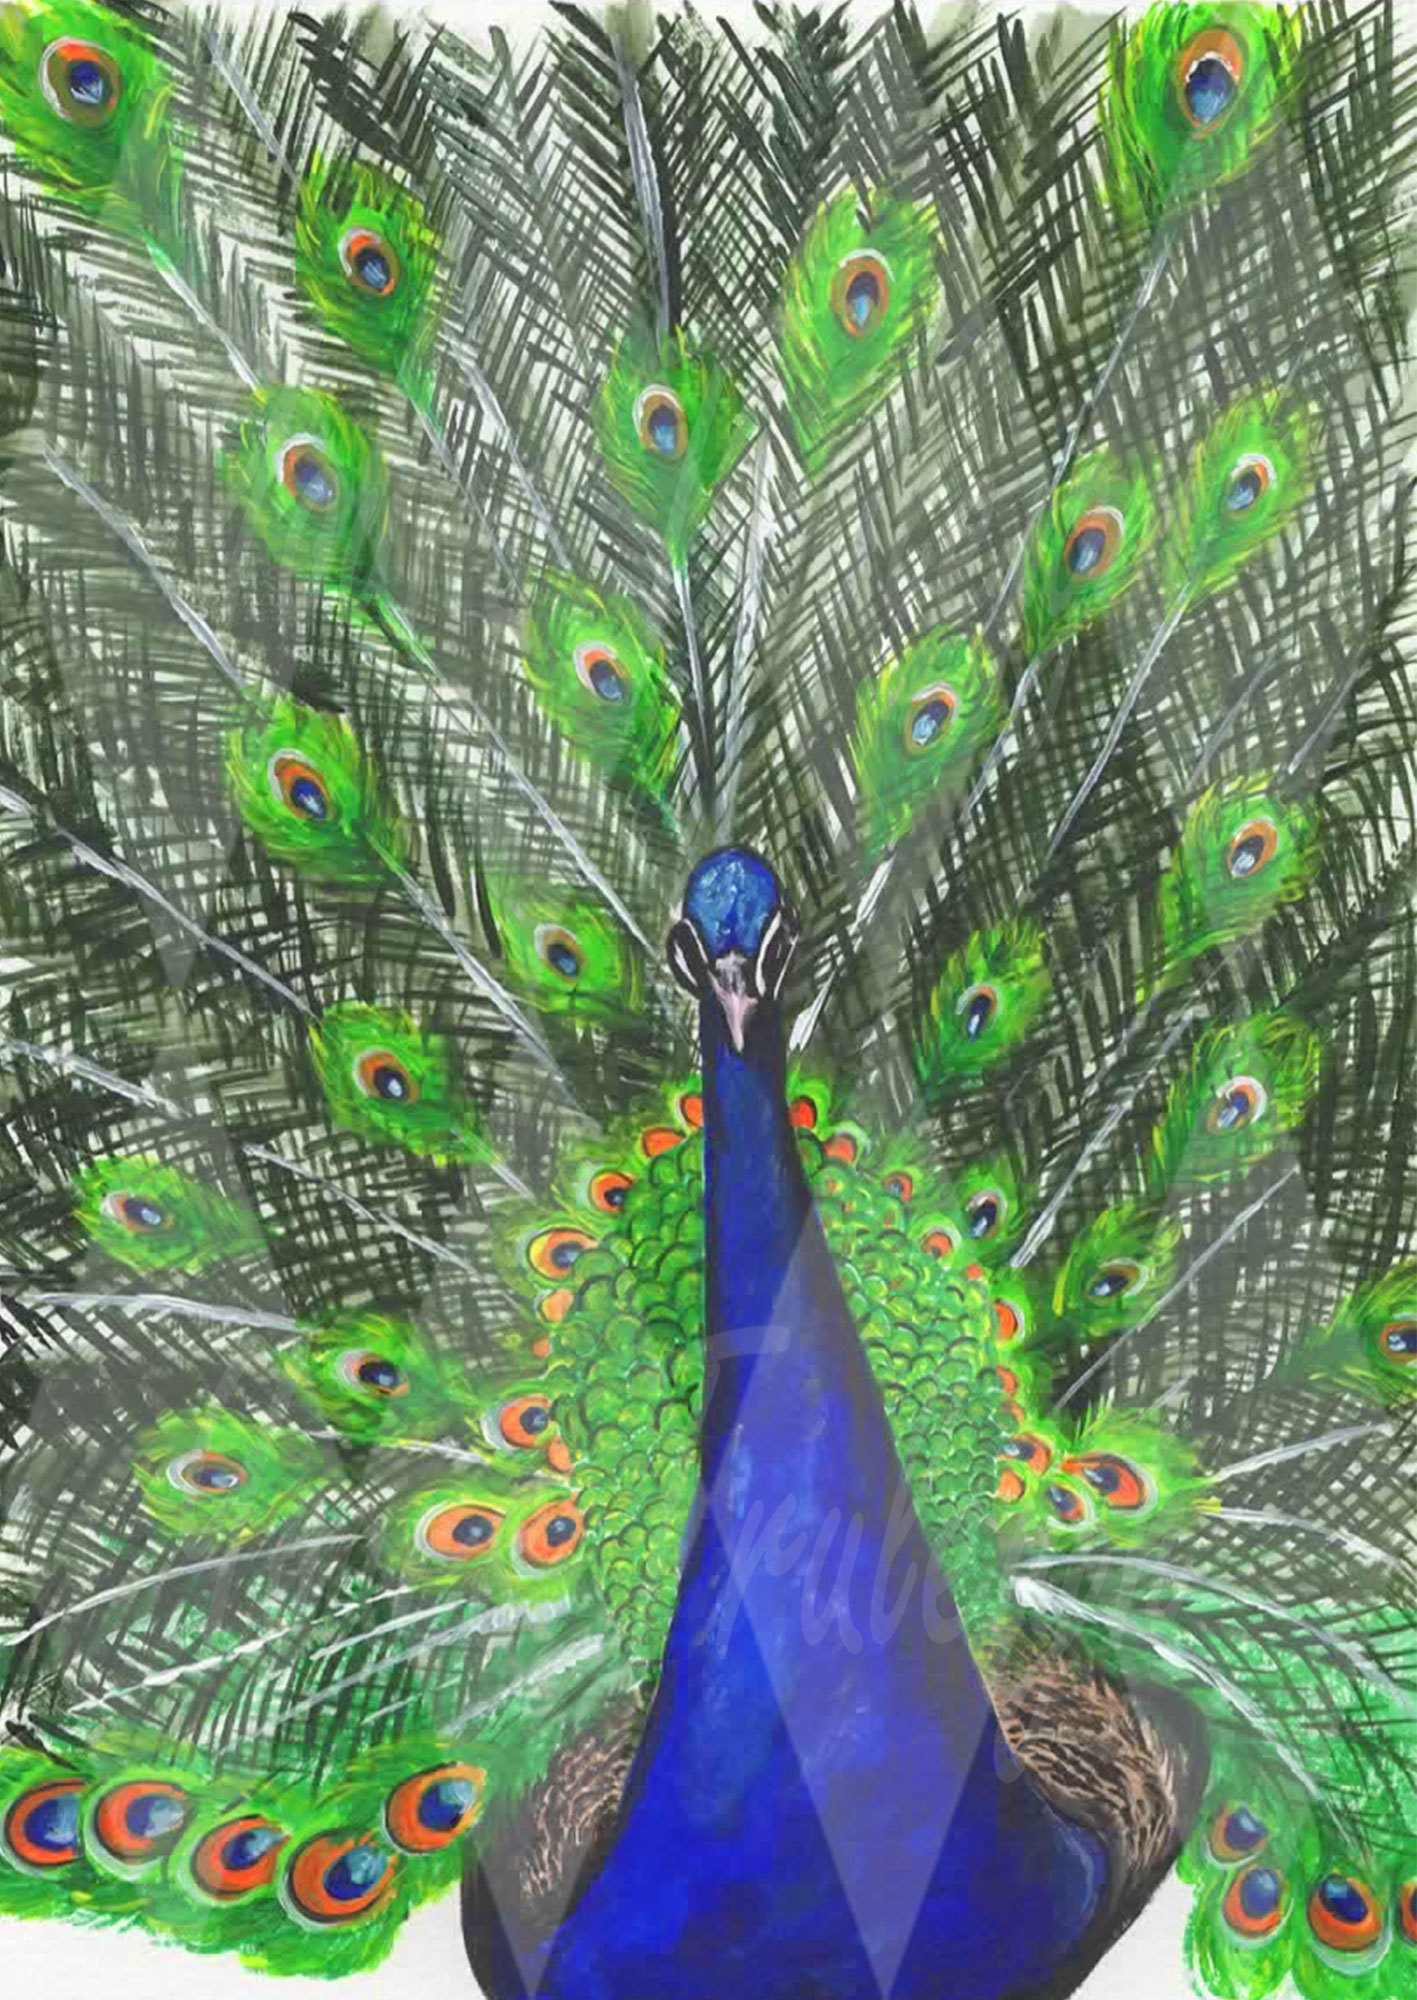 Peacock - Personal Use License